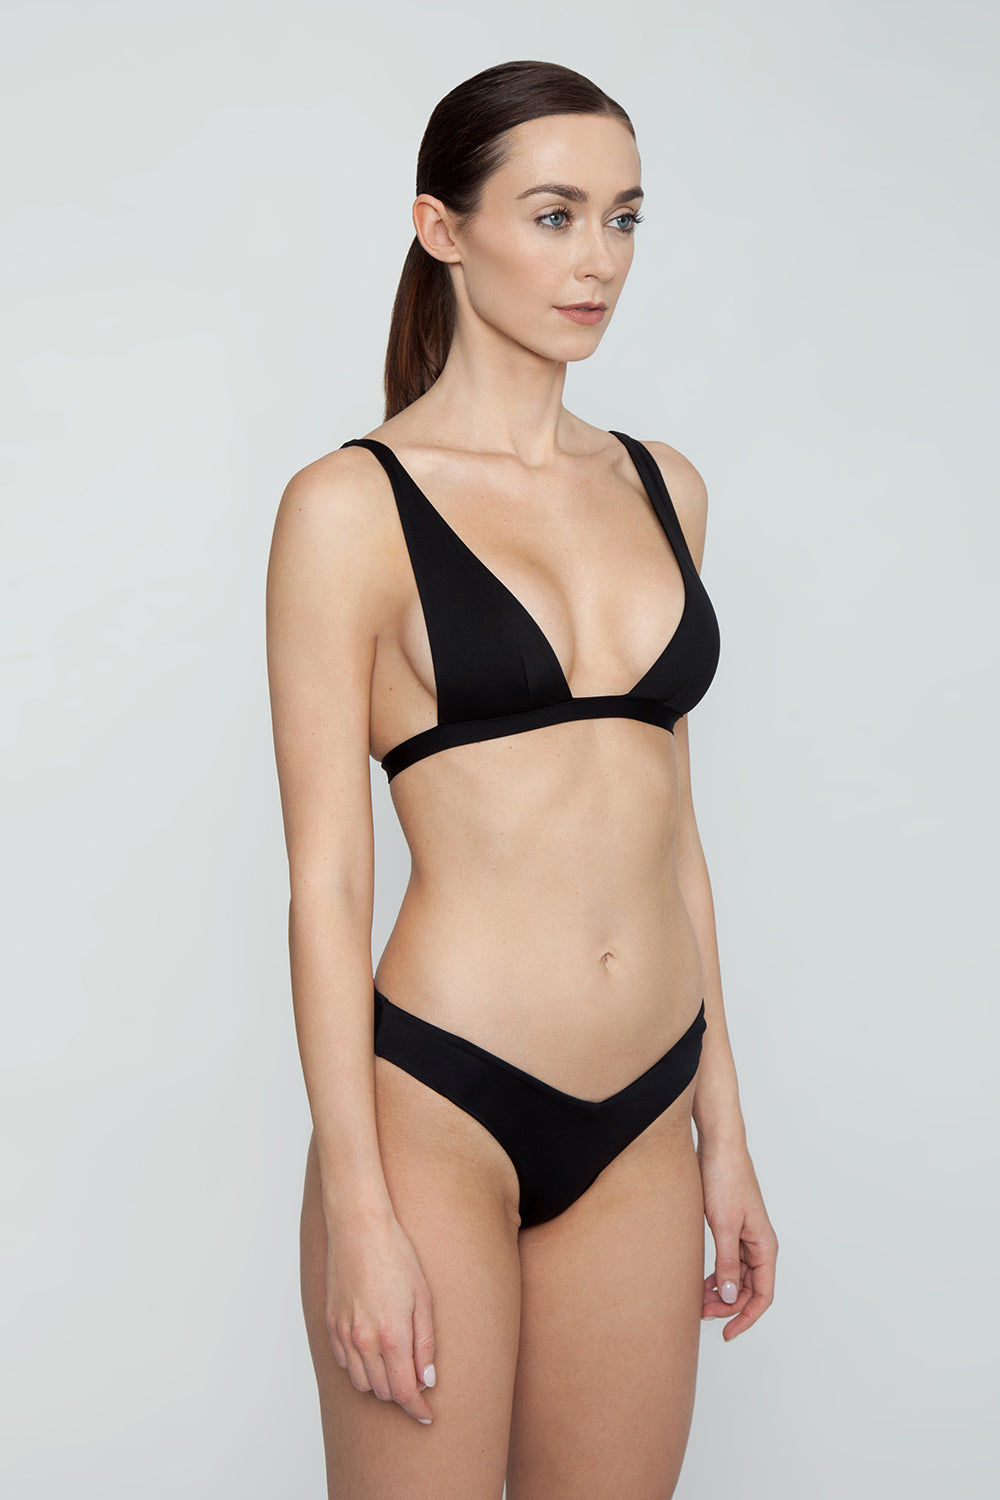 MONICA HANSEN BEACHWEAR Babe Watch Long Triangle Bikini Top - Black Bikini Top | Black| Monica Hansen Babe Watch Long Triangle Bikini Top - Black. Plunging U-neckline Long triangle top Small nickel colored metal clasp in back Double fabric on the inside instead of lining Italian fabric 85% Nylon 15% Elastane Manufactured in Italy Hand wash cold.  Dry Flat Side View